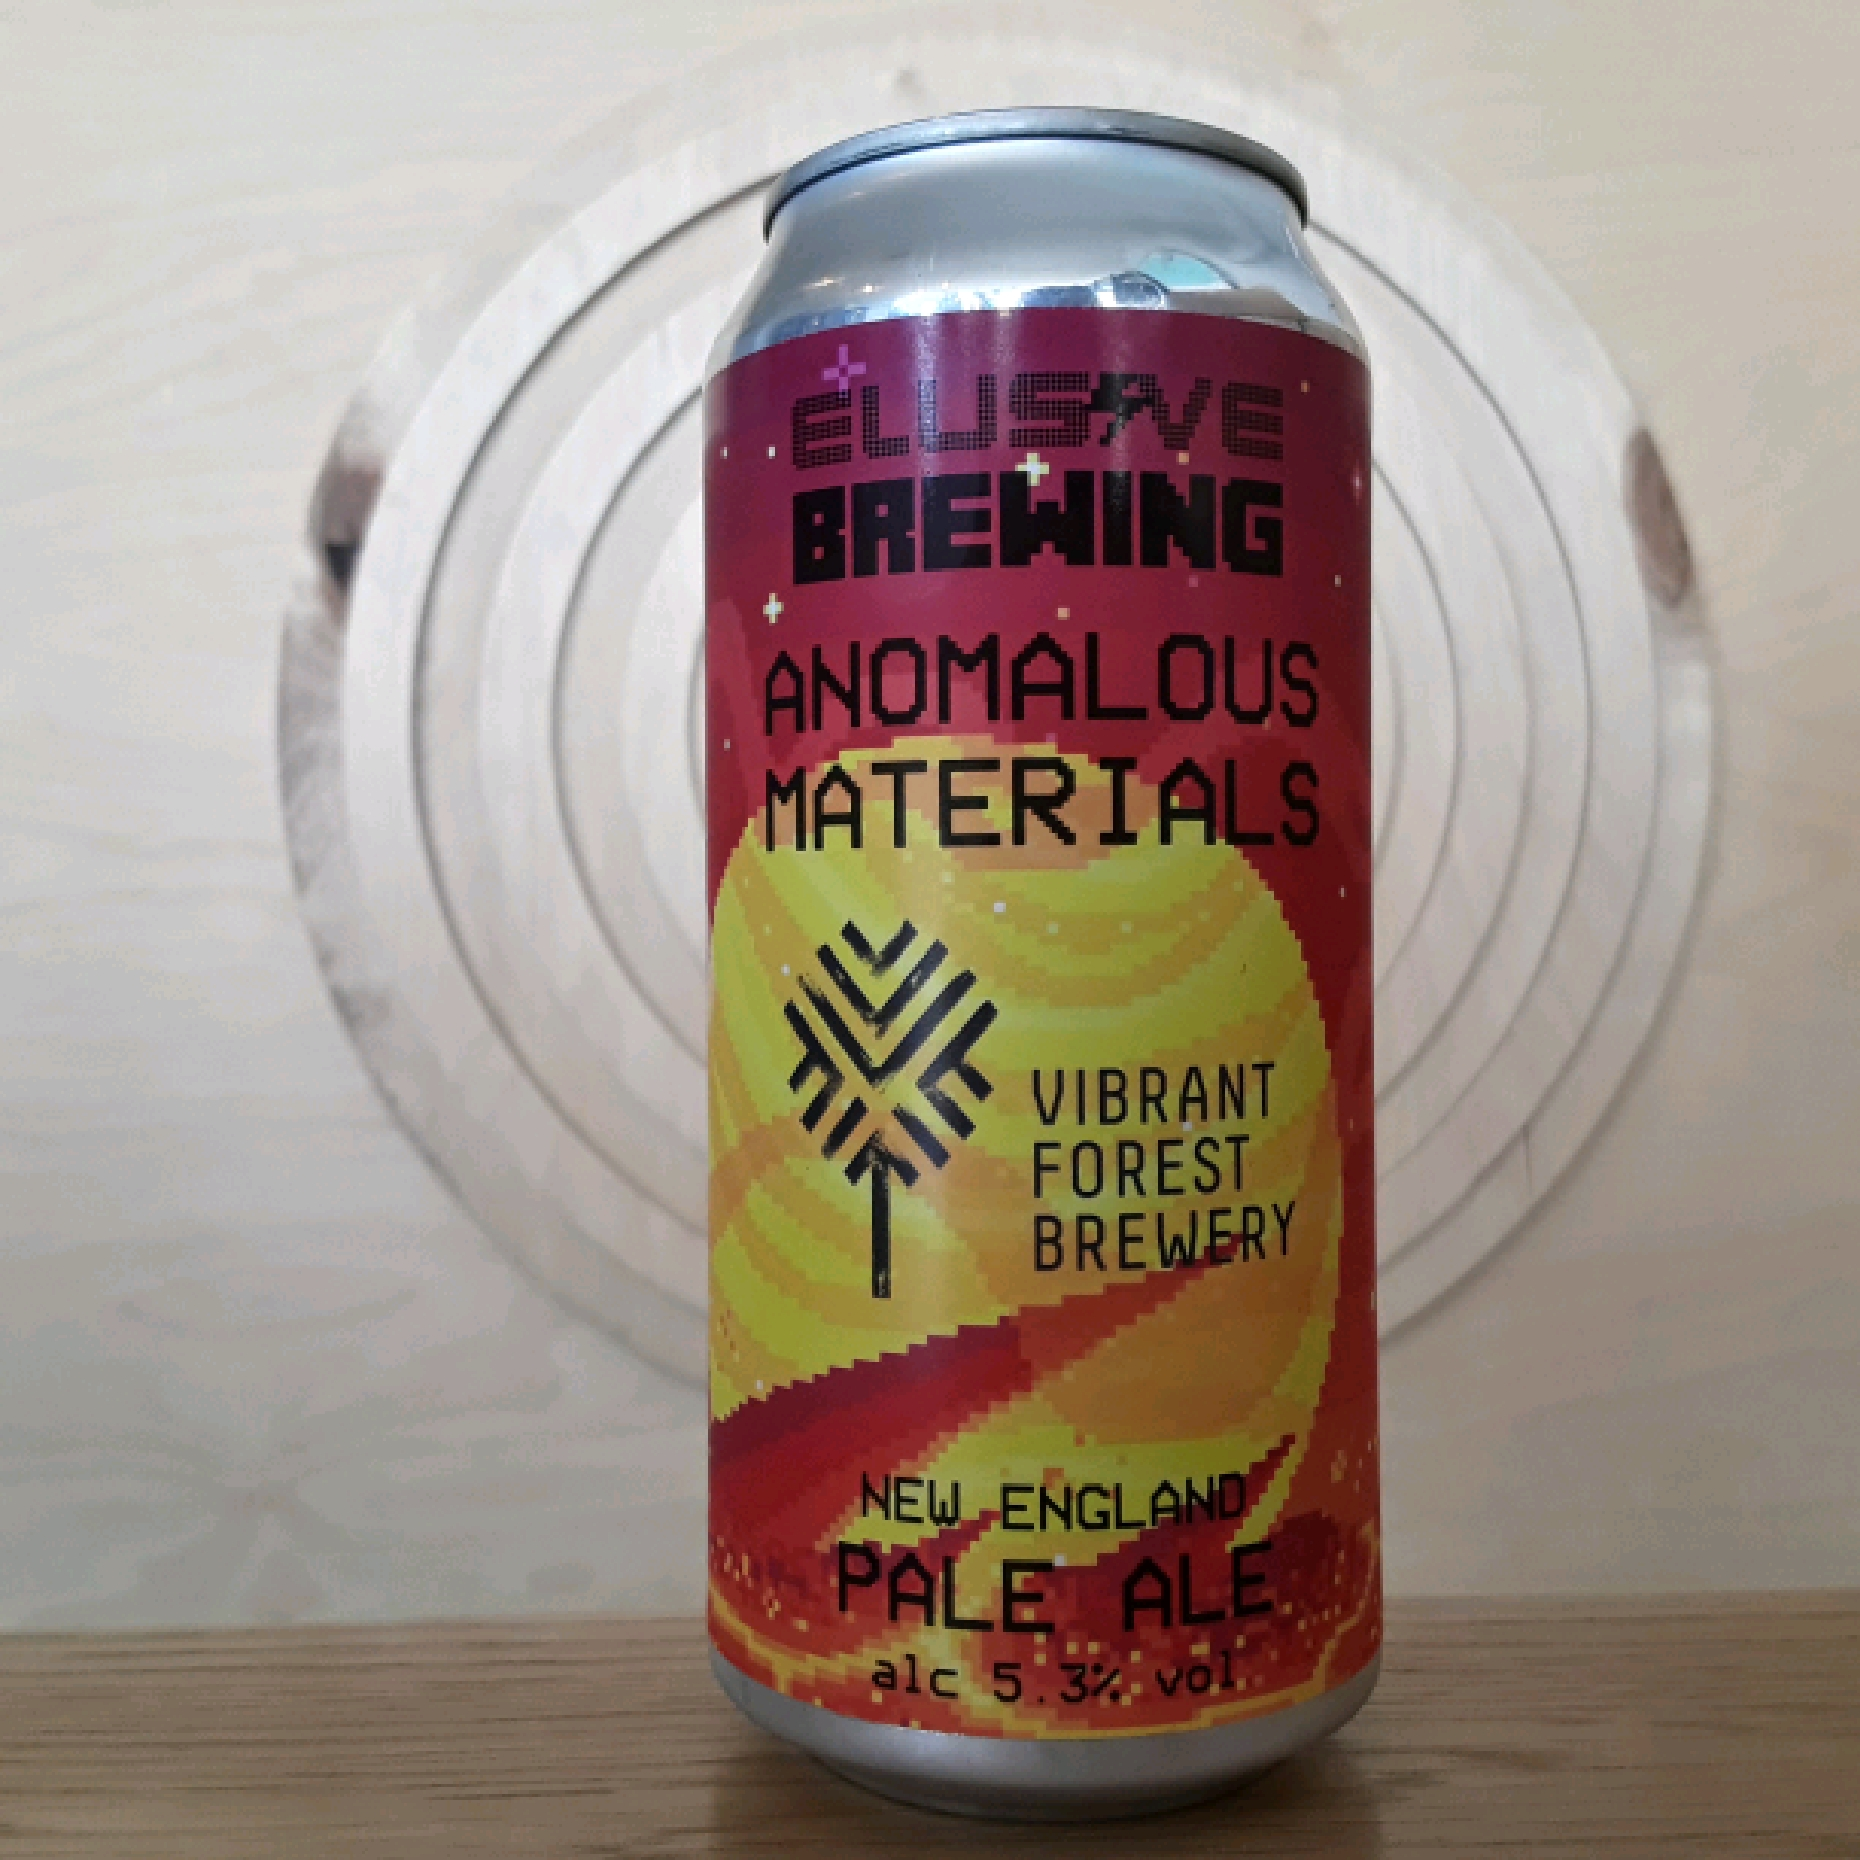 Elusive Brewing X Vibrant Forest | Anomalous Materials | Pale